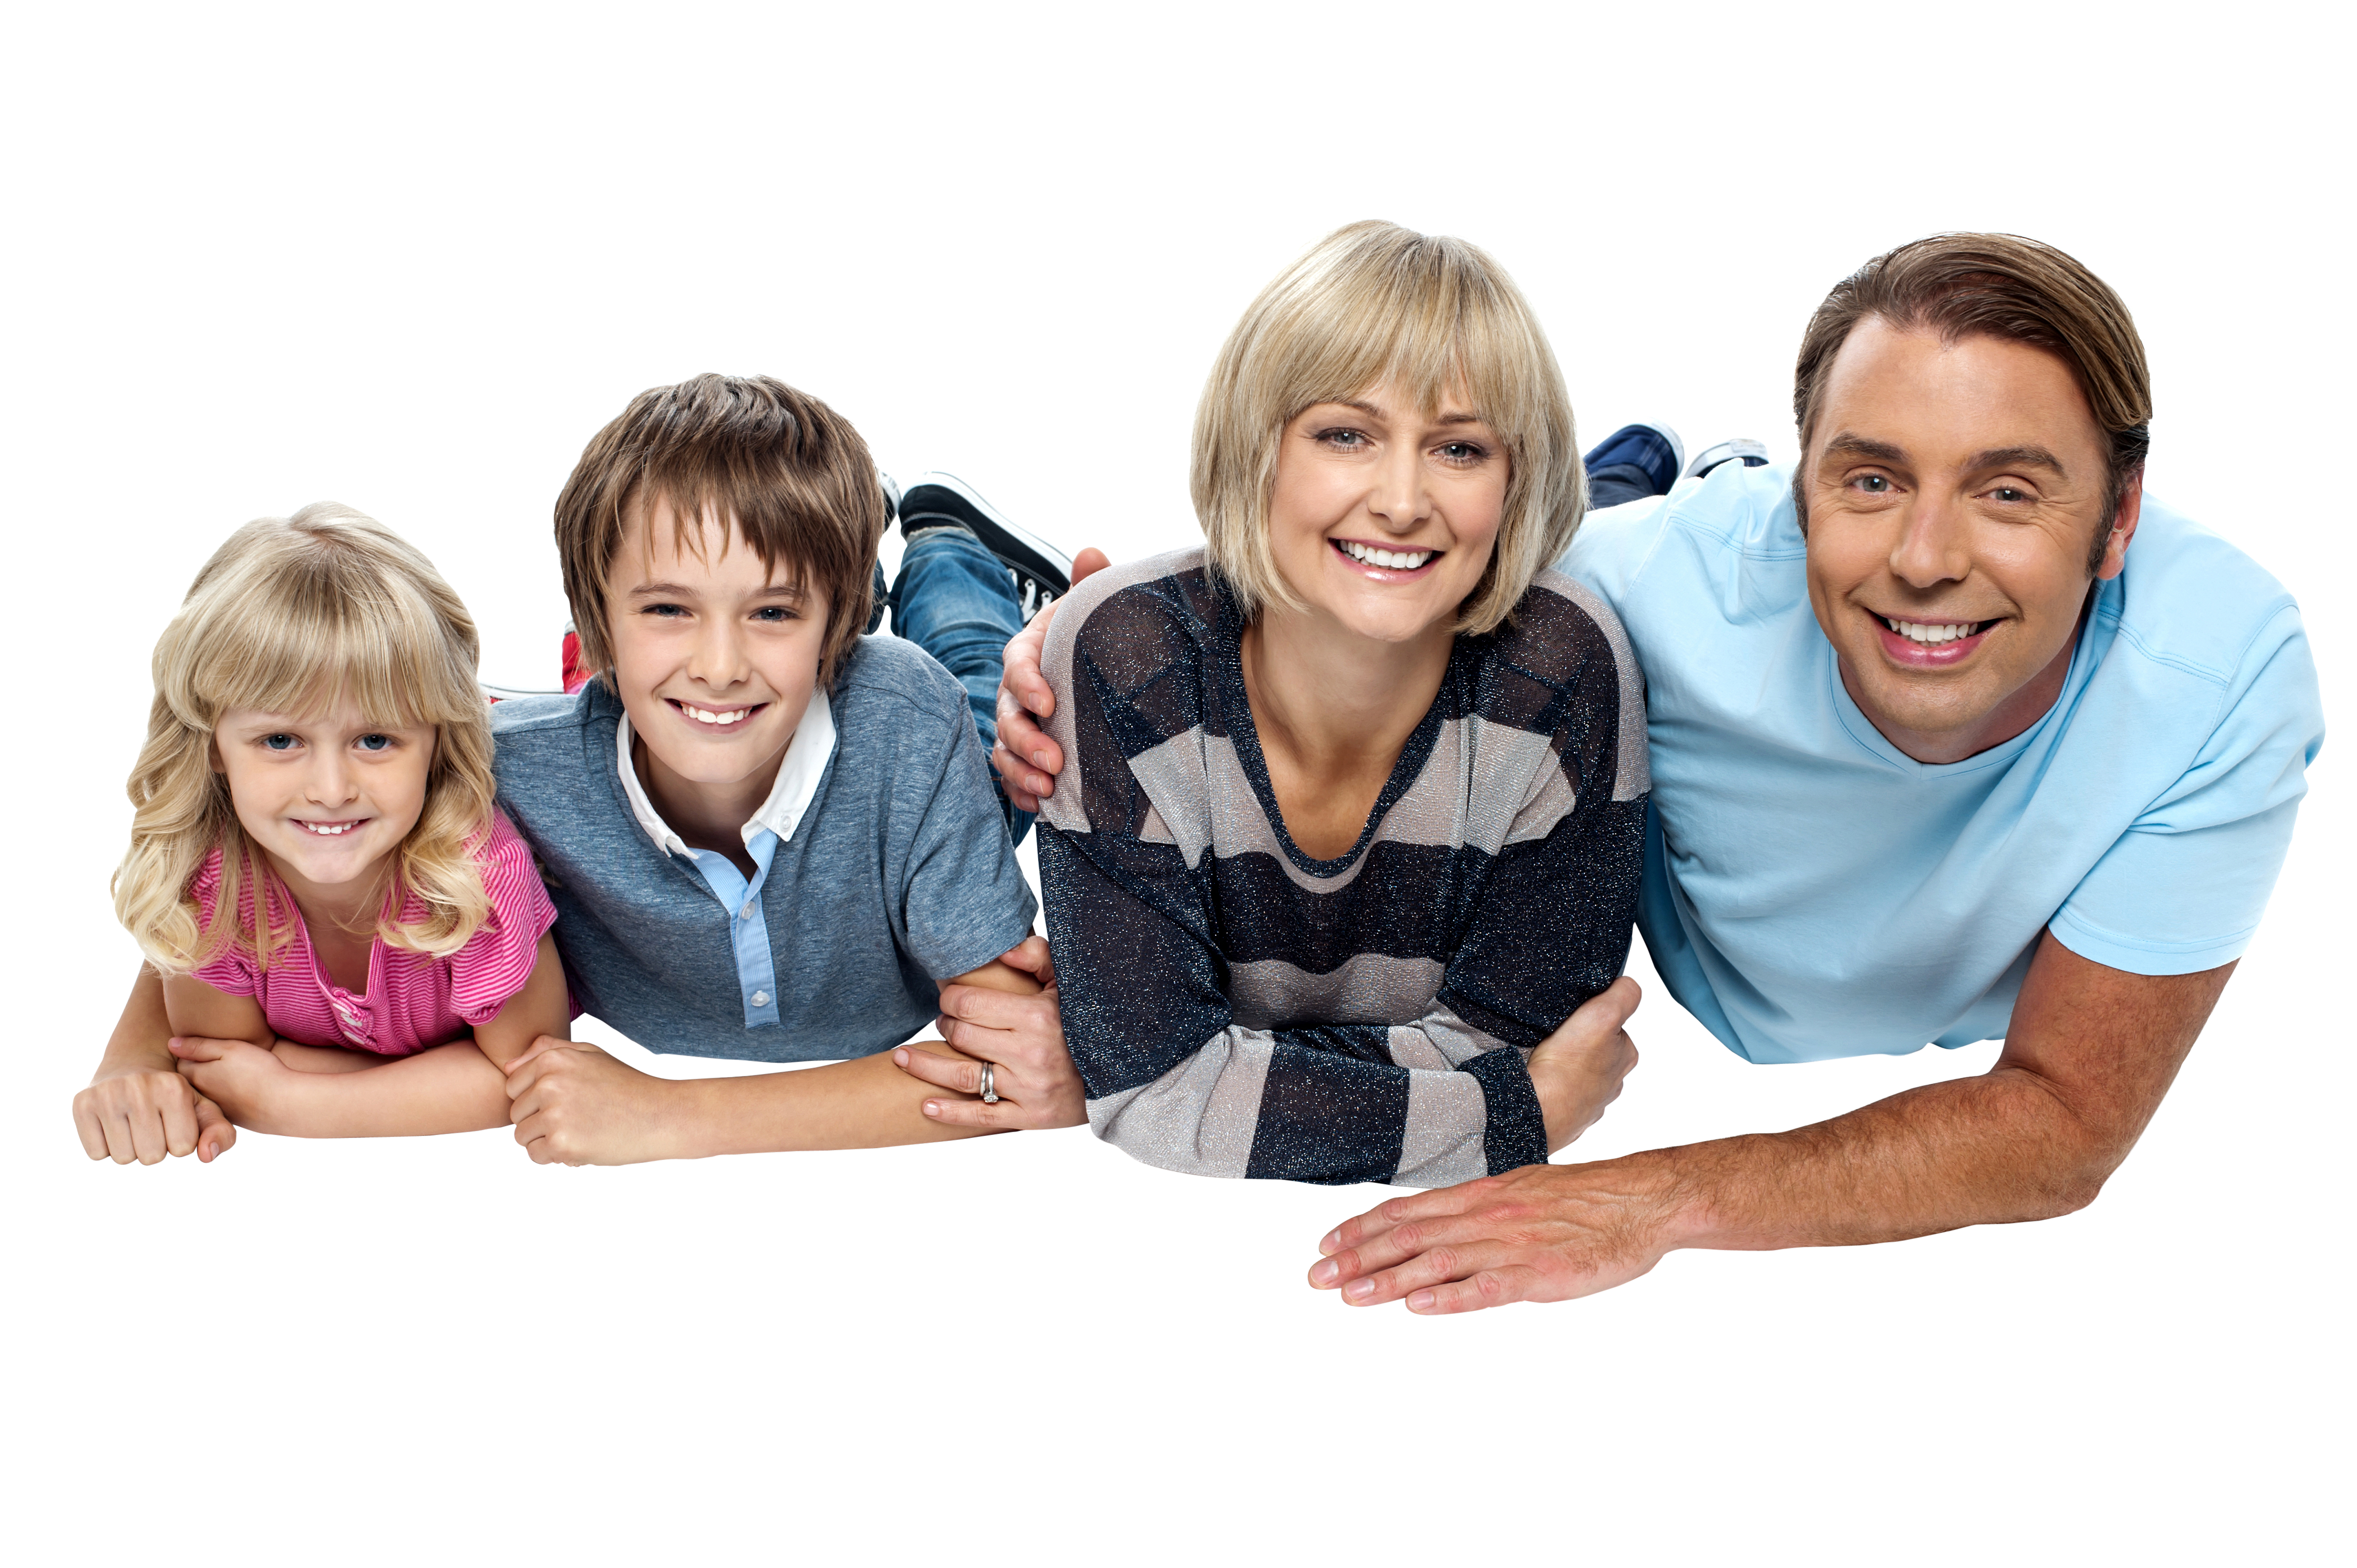 Family Free Commercial Use PNG Images.